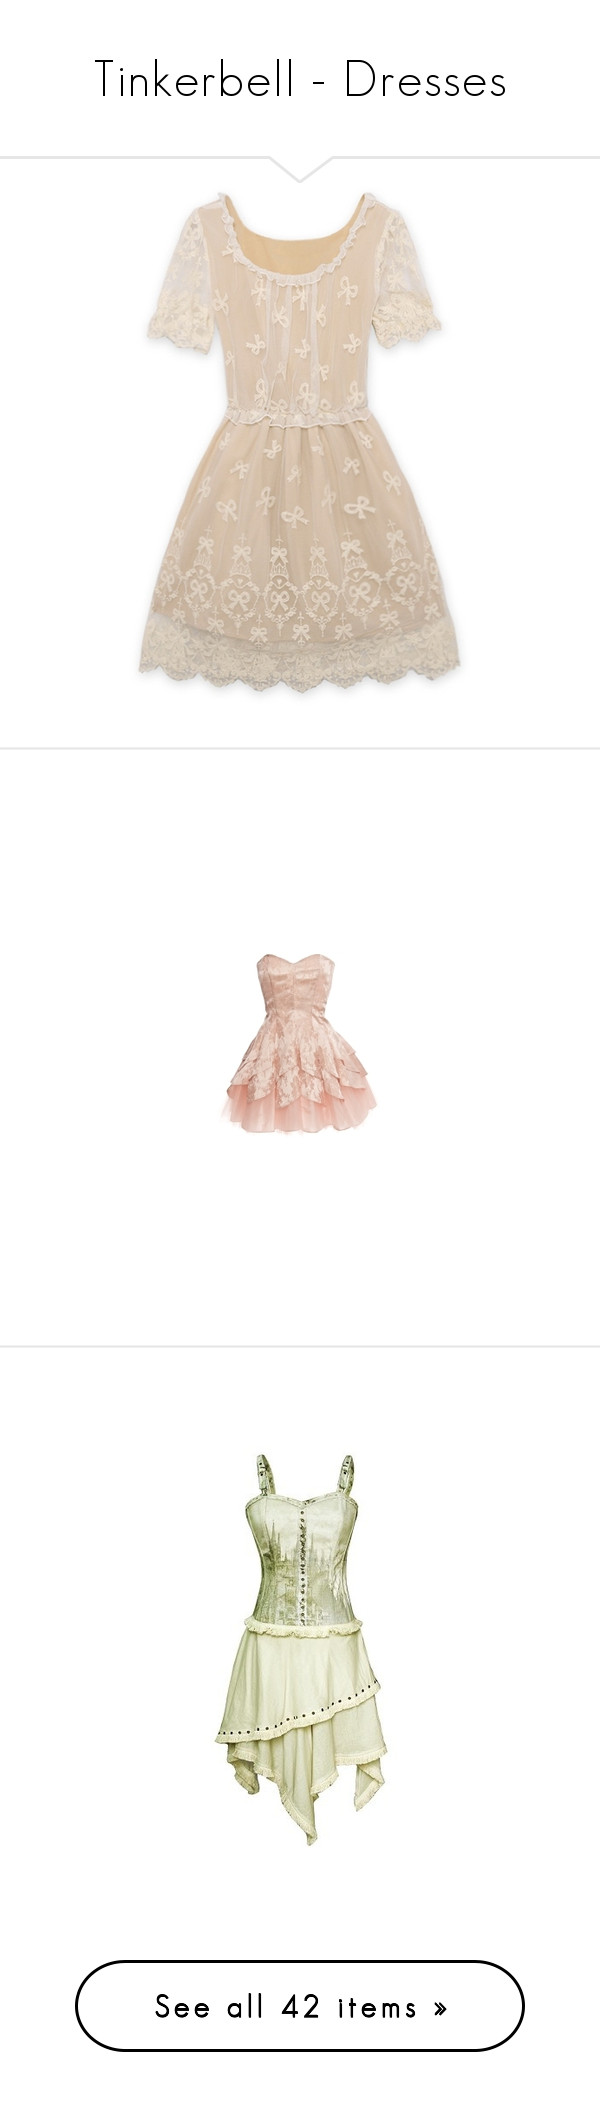 """Tinkerbell - Dresses"" by bbnncc12 ❤ liked on Polyvore featuring dresses, vestidos, lace, flower dress, blossoms dresses, pink embroidered dress, pink lace dress, bow tie dress, short dresses and vestiti"